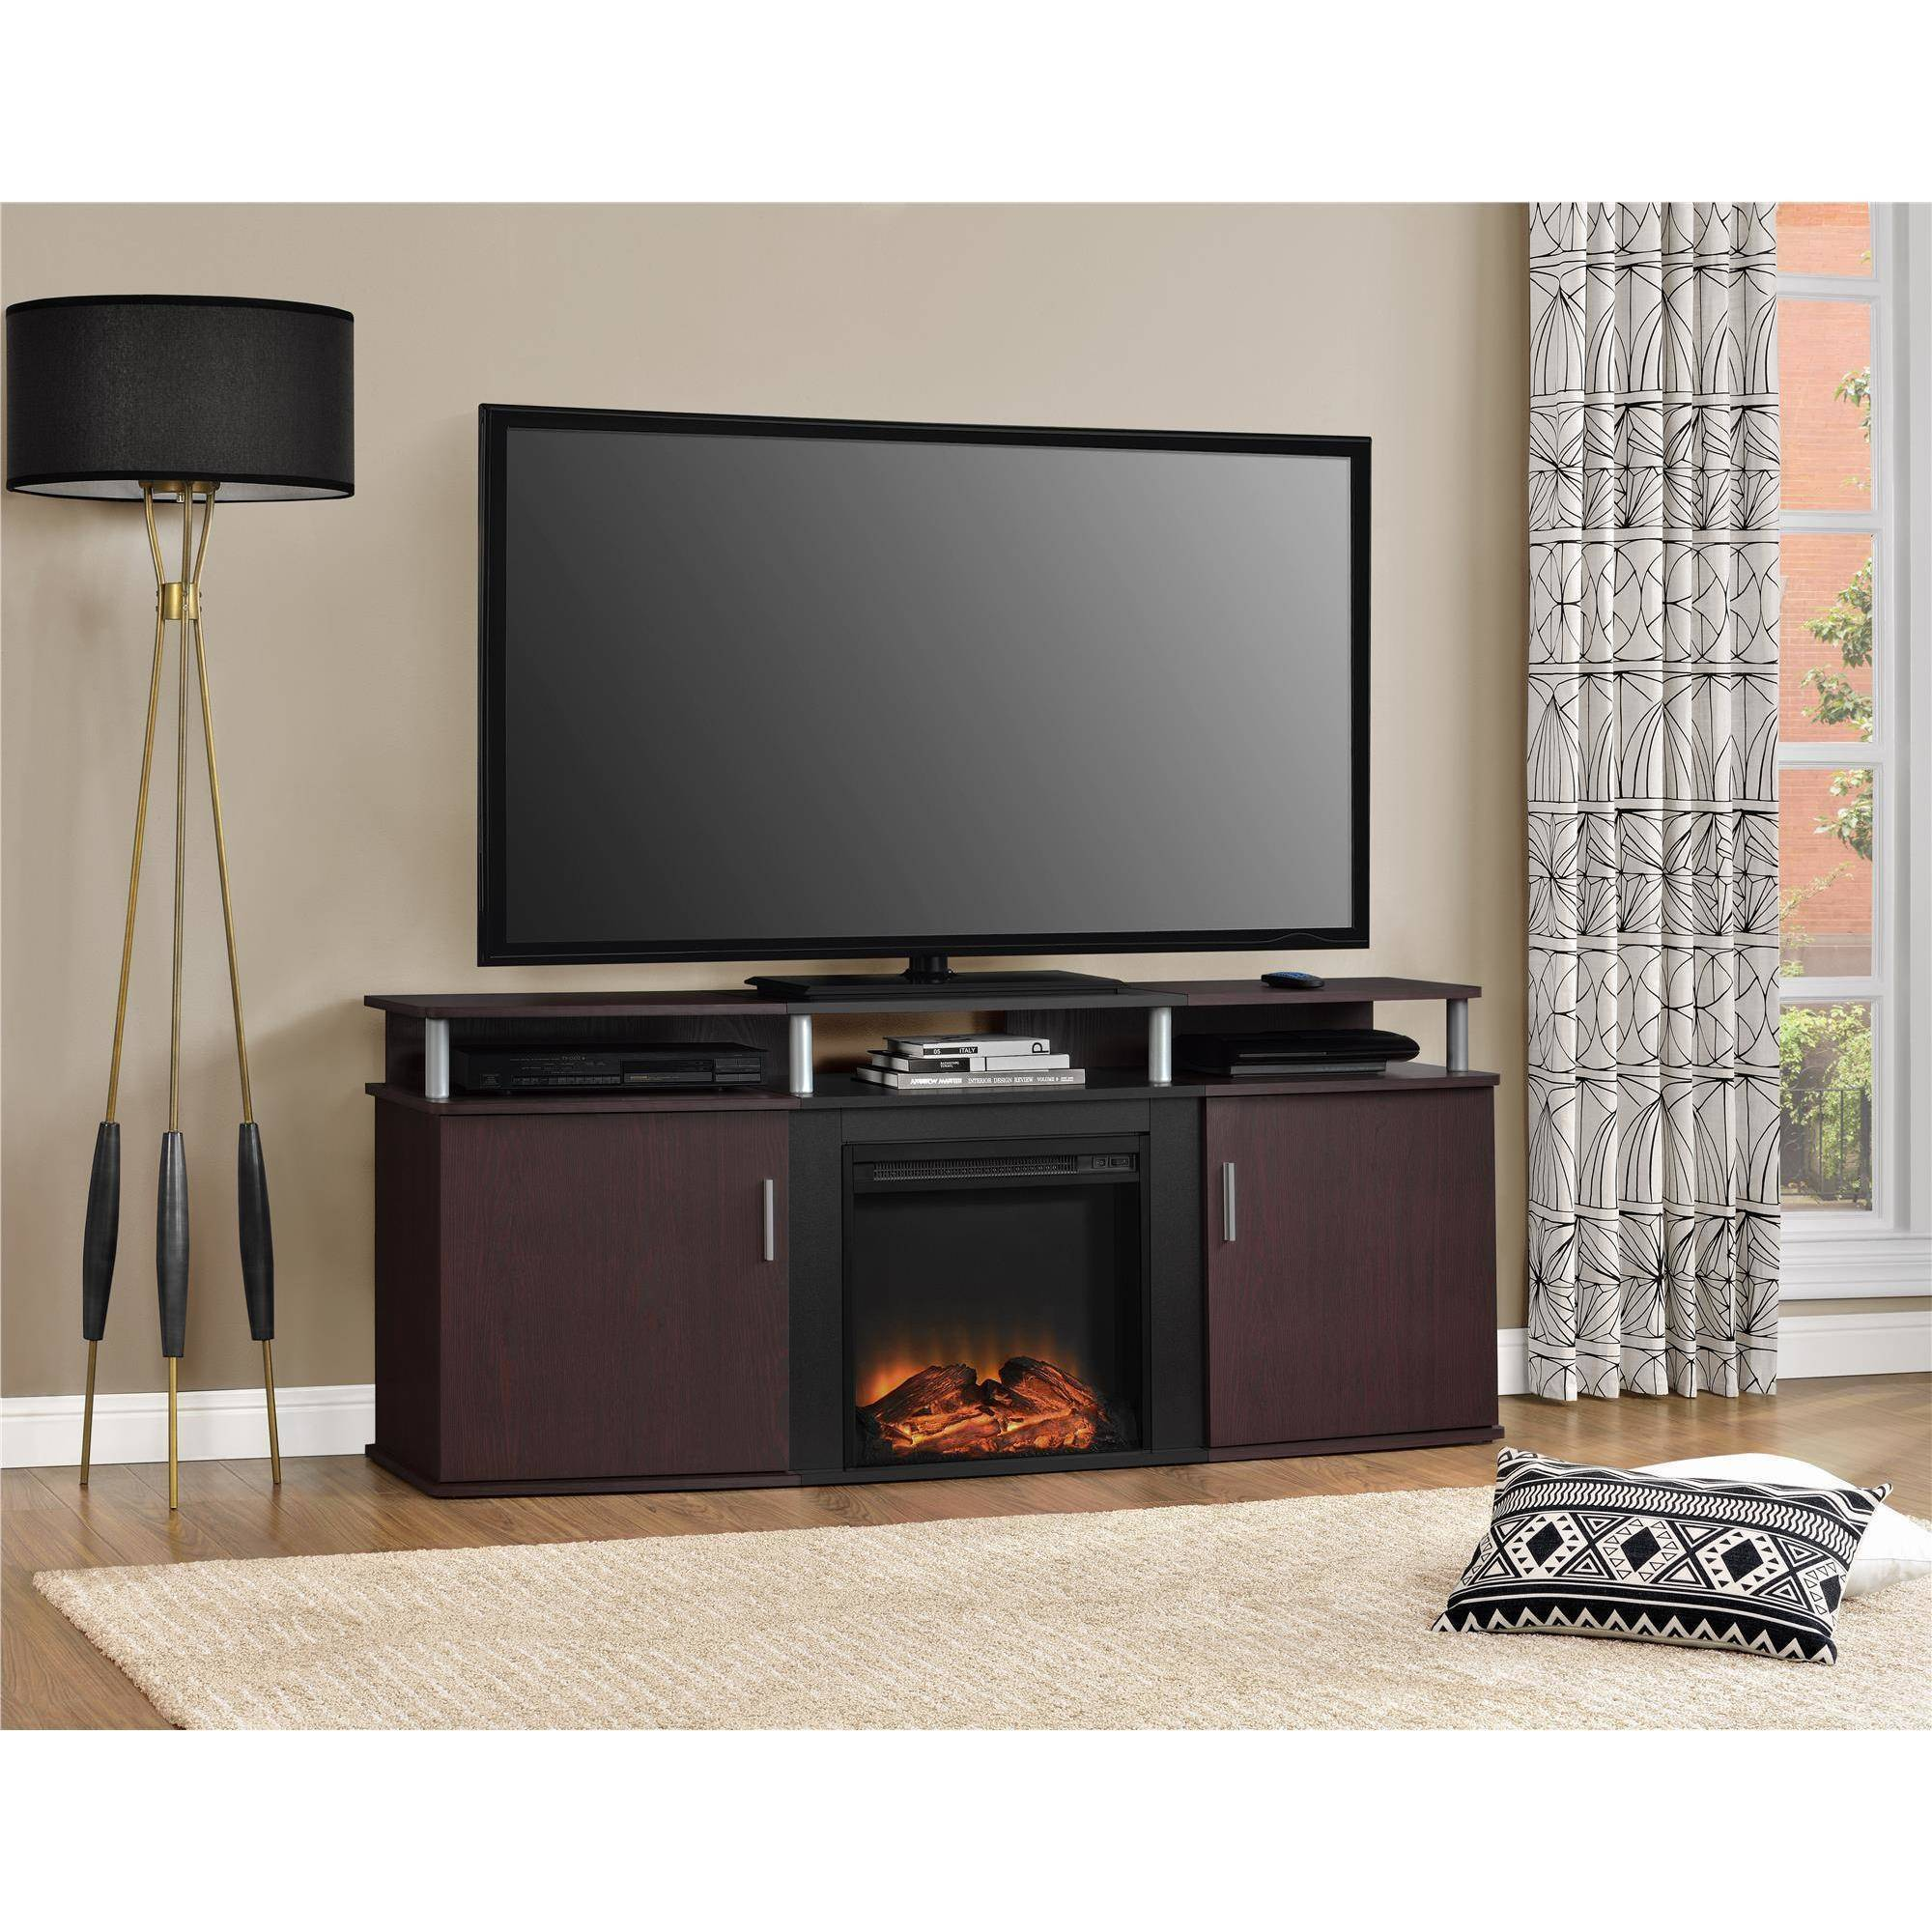 "Carson Fireplace TV Console for TVs up to 70"", Multiple Colors"